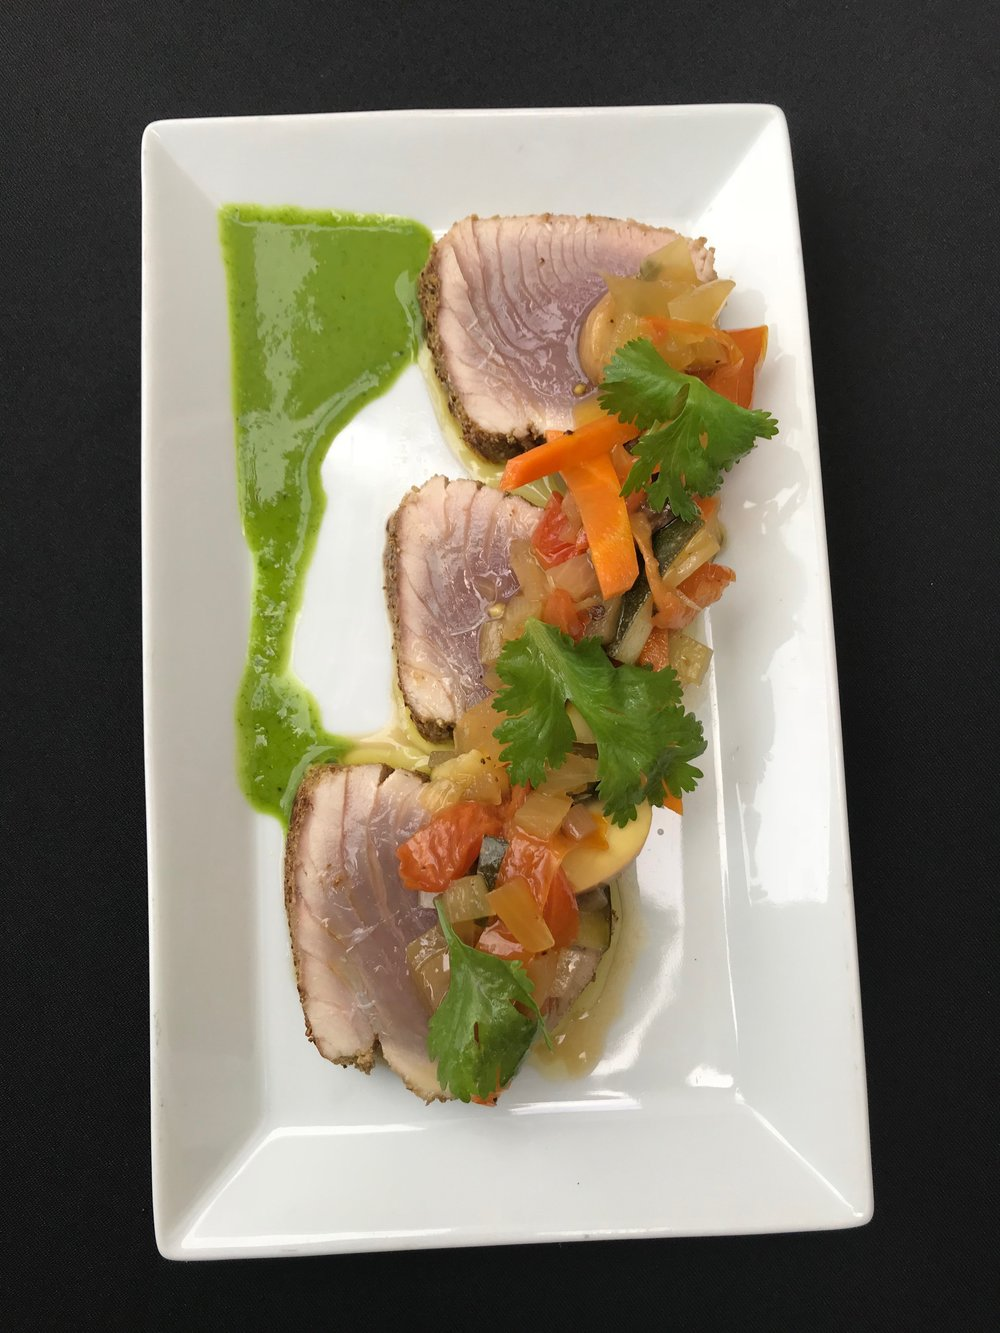 Encrusted Tuna - Fennel encrusted tuna with vegetable escabeche and cilantro puree